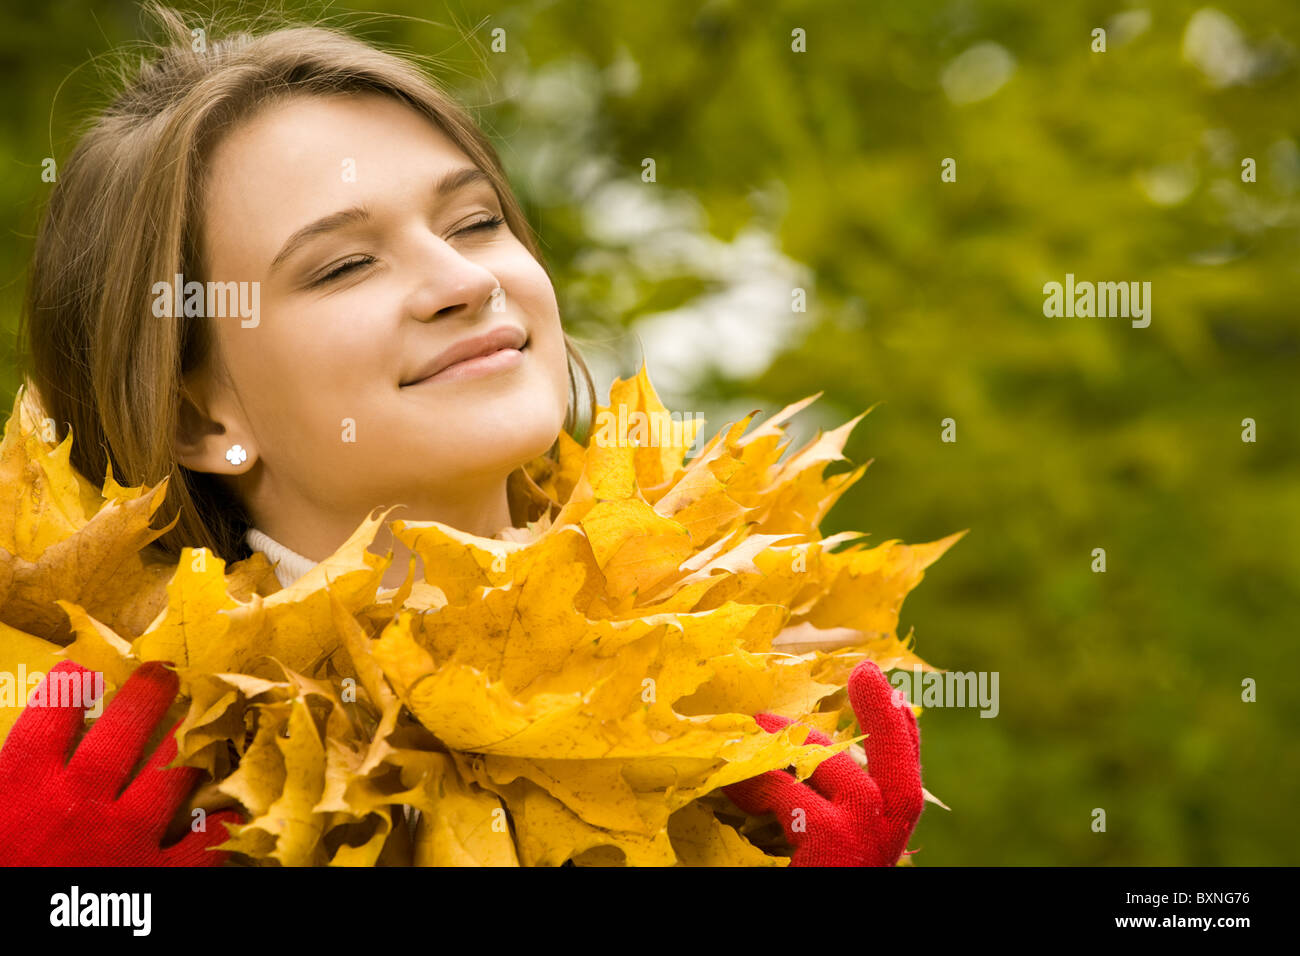 dada7698ea Photo of smiling girl with closed eyes wearing maple garland around her  neck - Stock Image